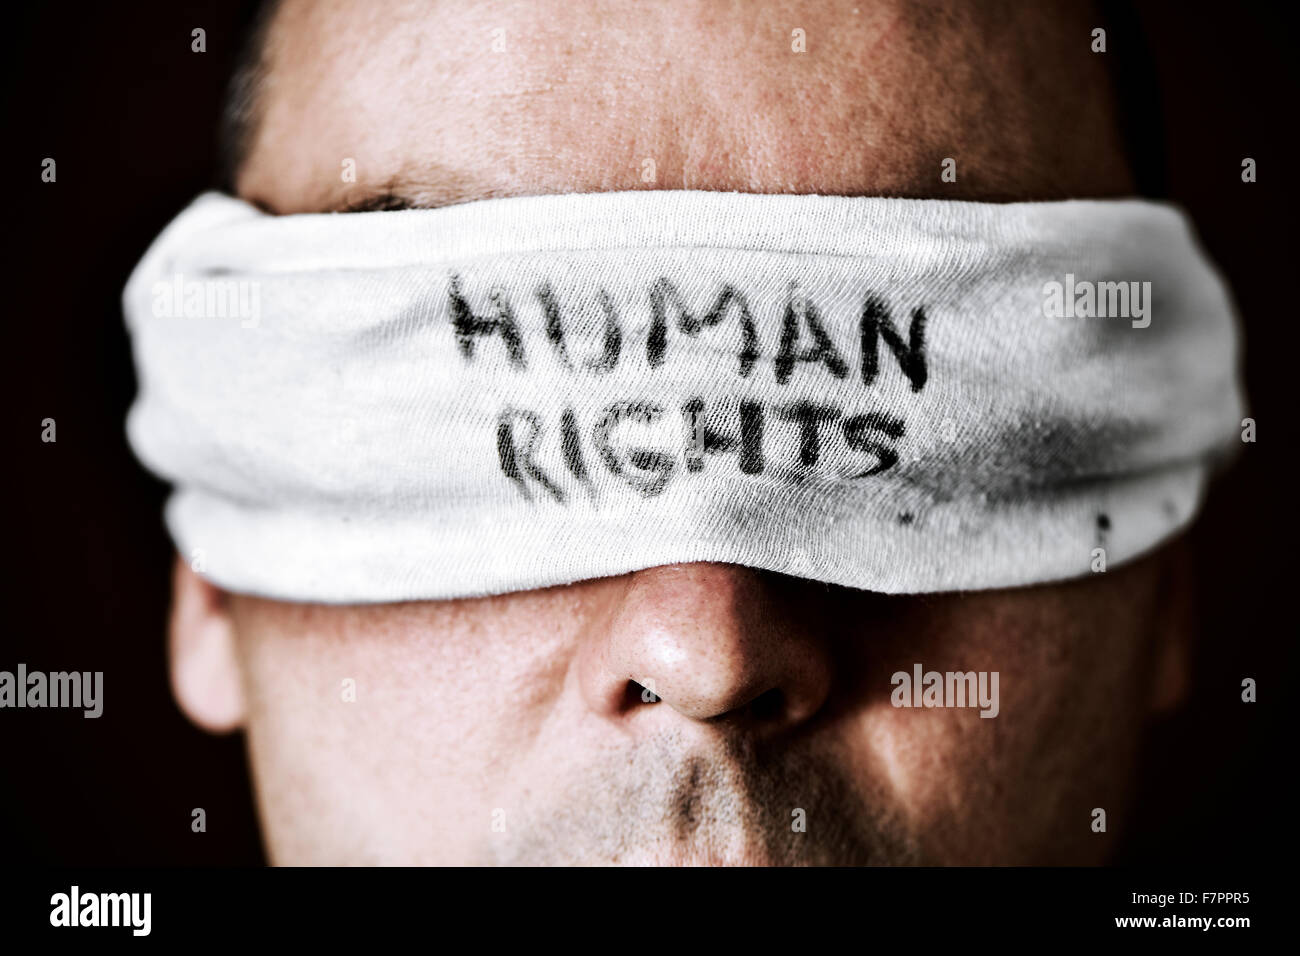 closeup of a young man with a blindfold in his eyes with the text human rights written in it, as a symbol of oppression - Stock Image